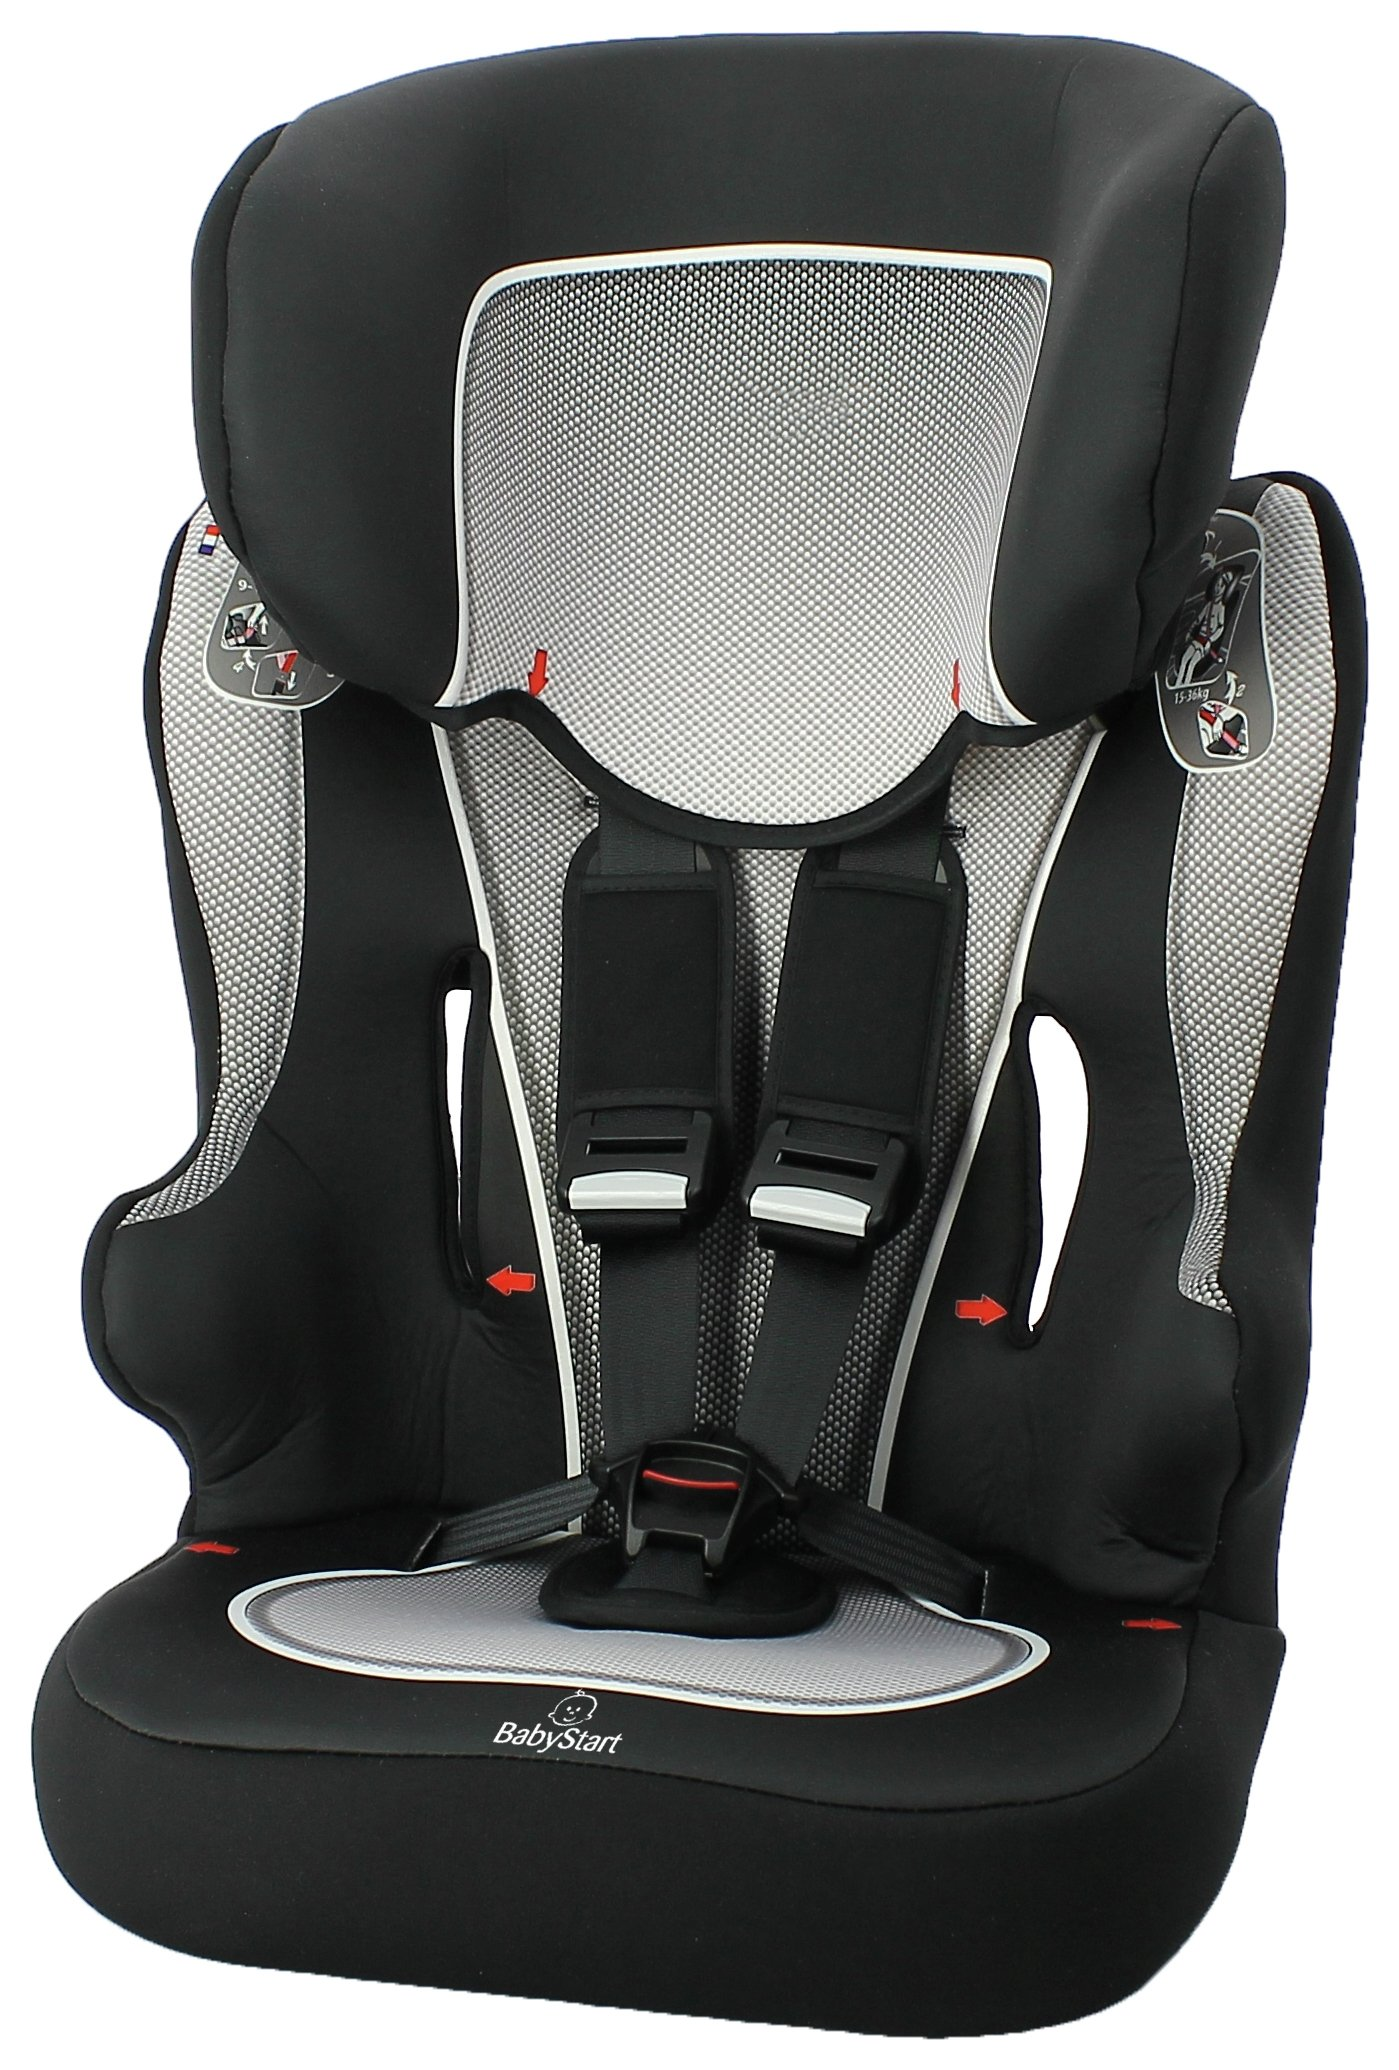 babystart-racer-group-1-2-3-black-grey-car-seat